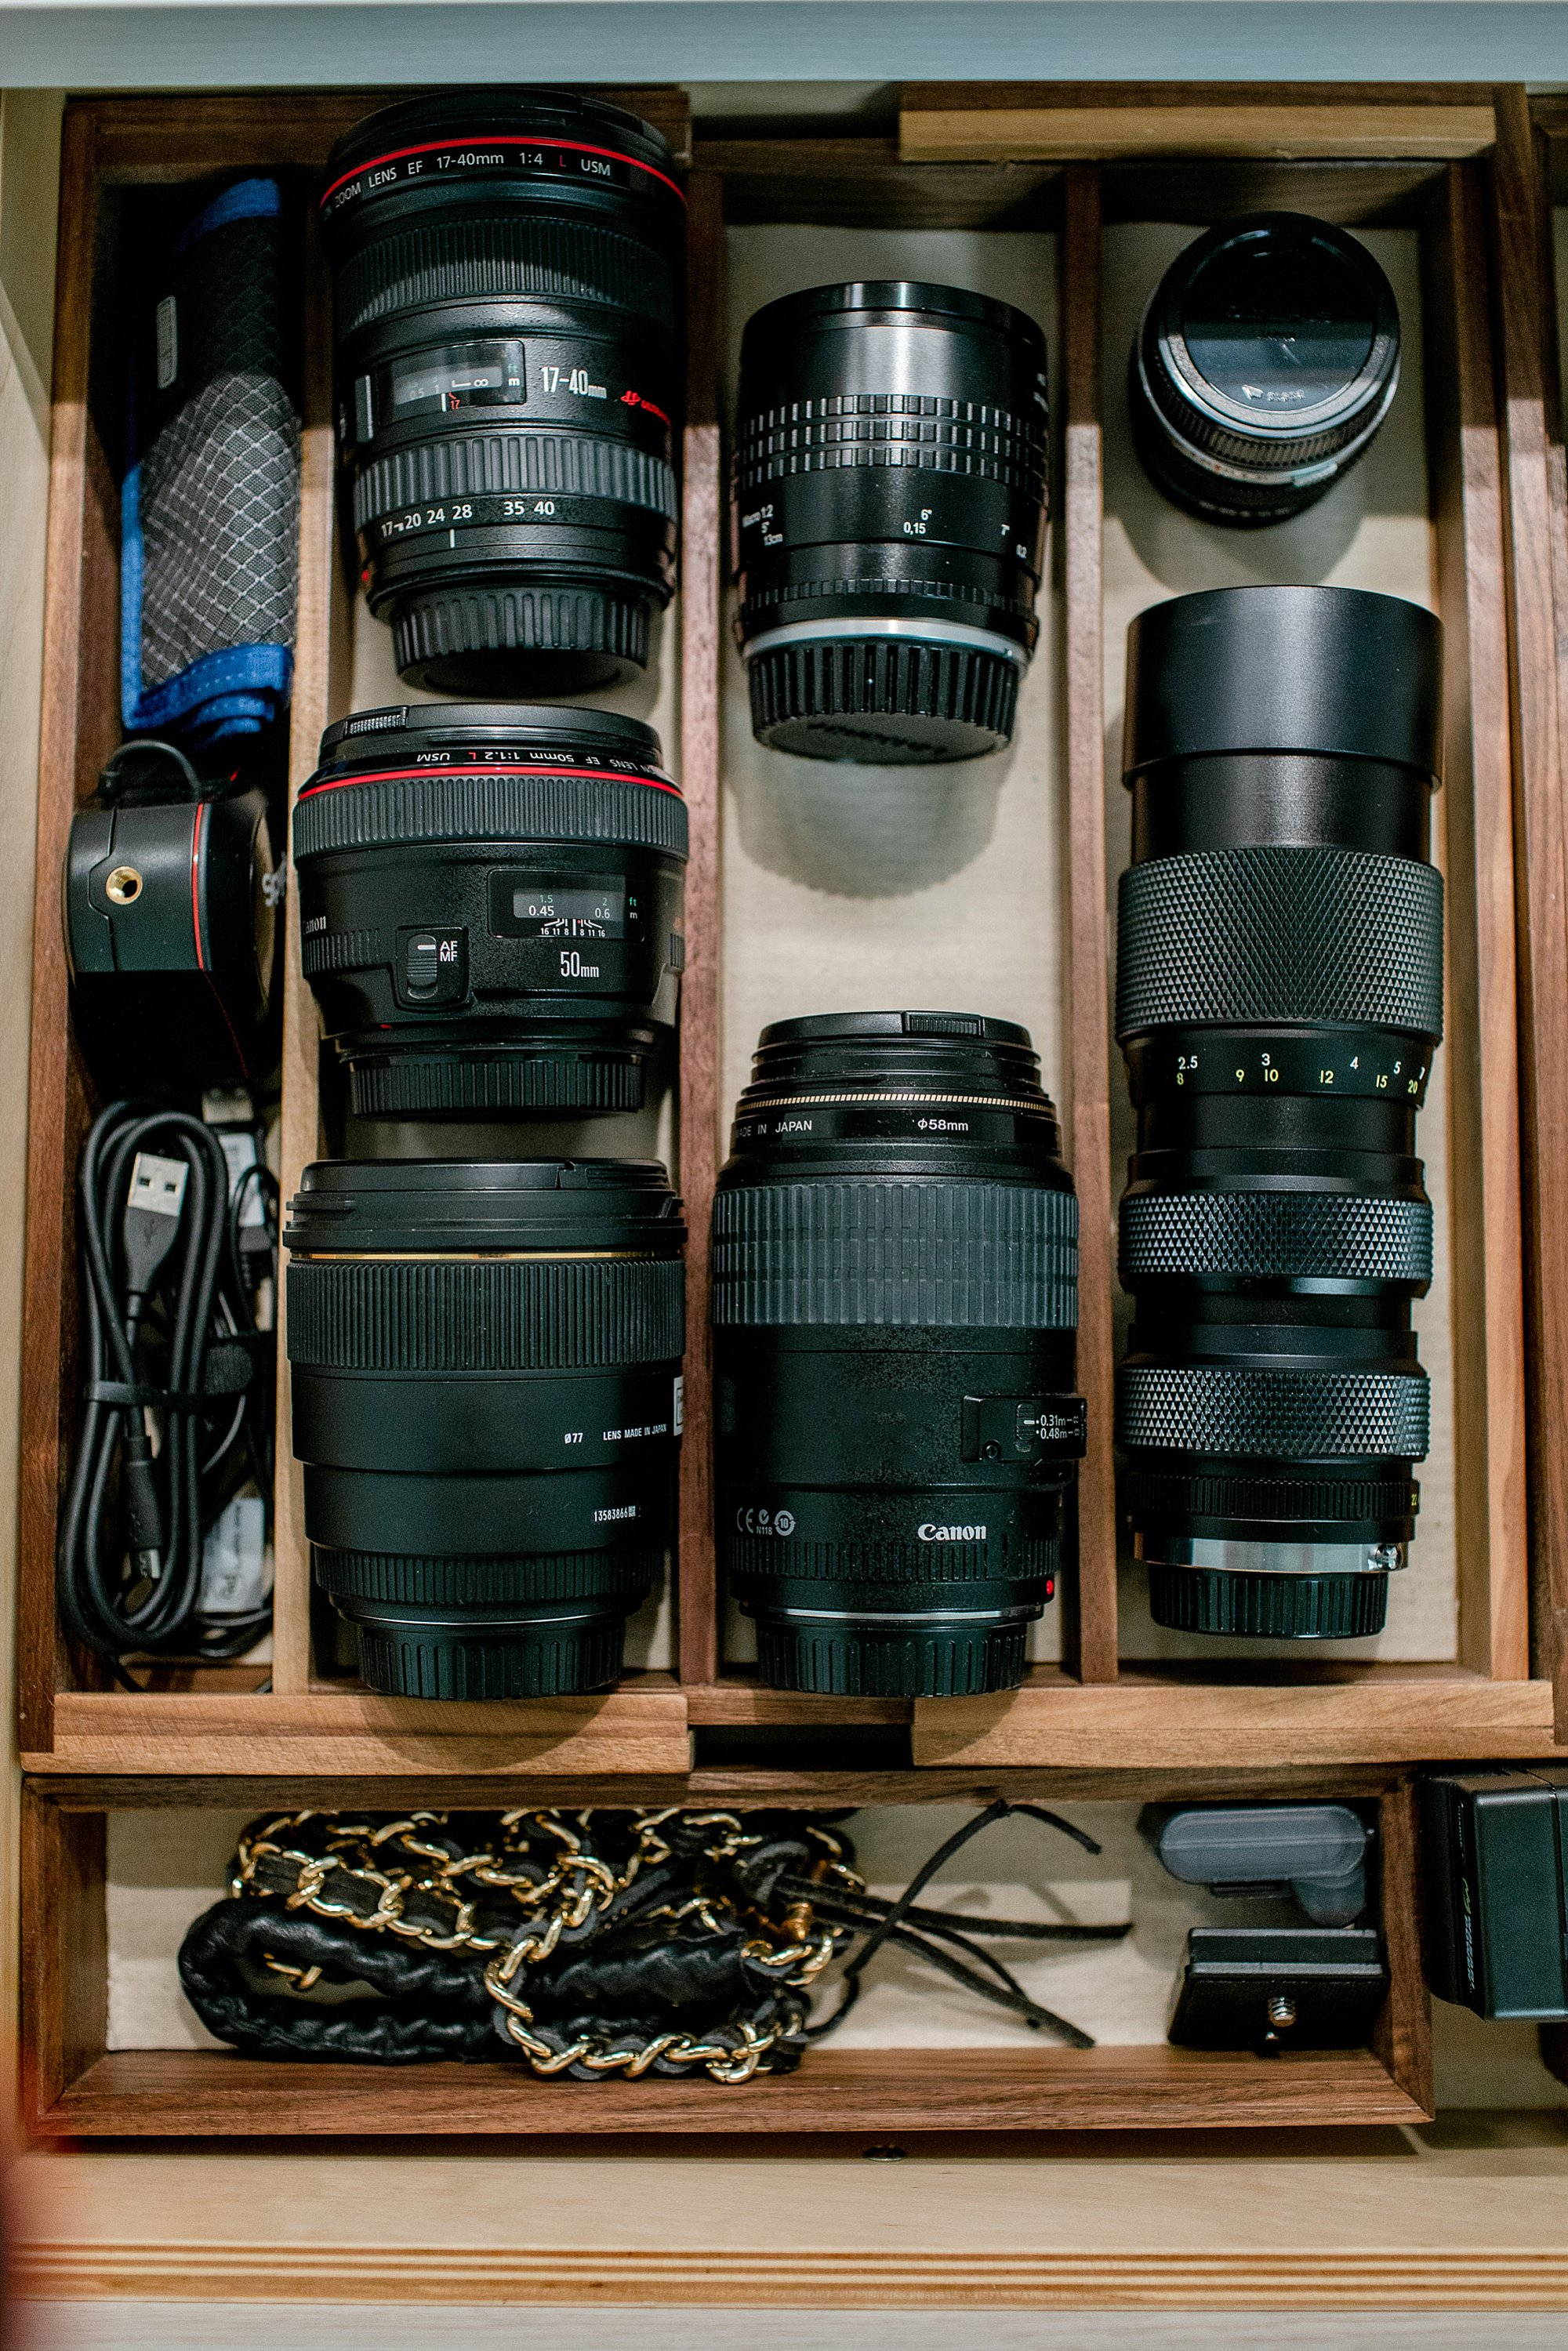 organizing lenses in a drawer. see this reveal in a photographer's home office closet and organizing camera lenses in drawers #photography #lensdrawer #lenses #organization